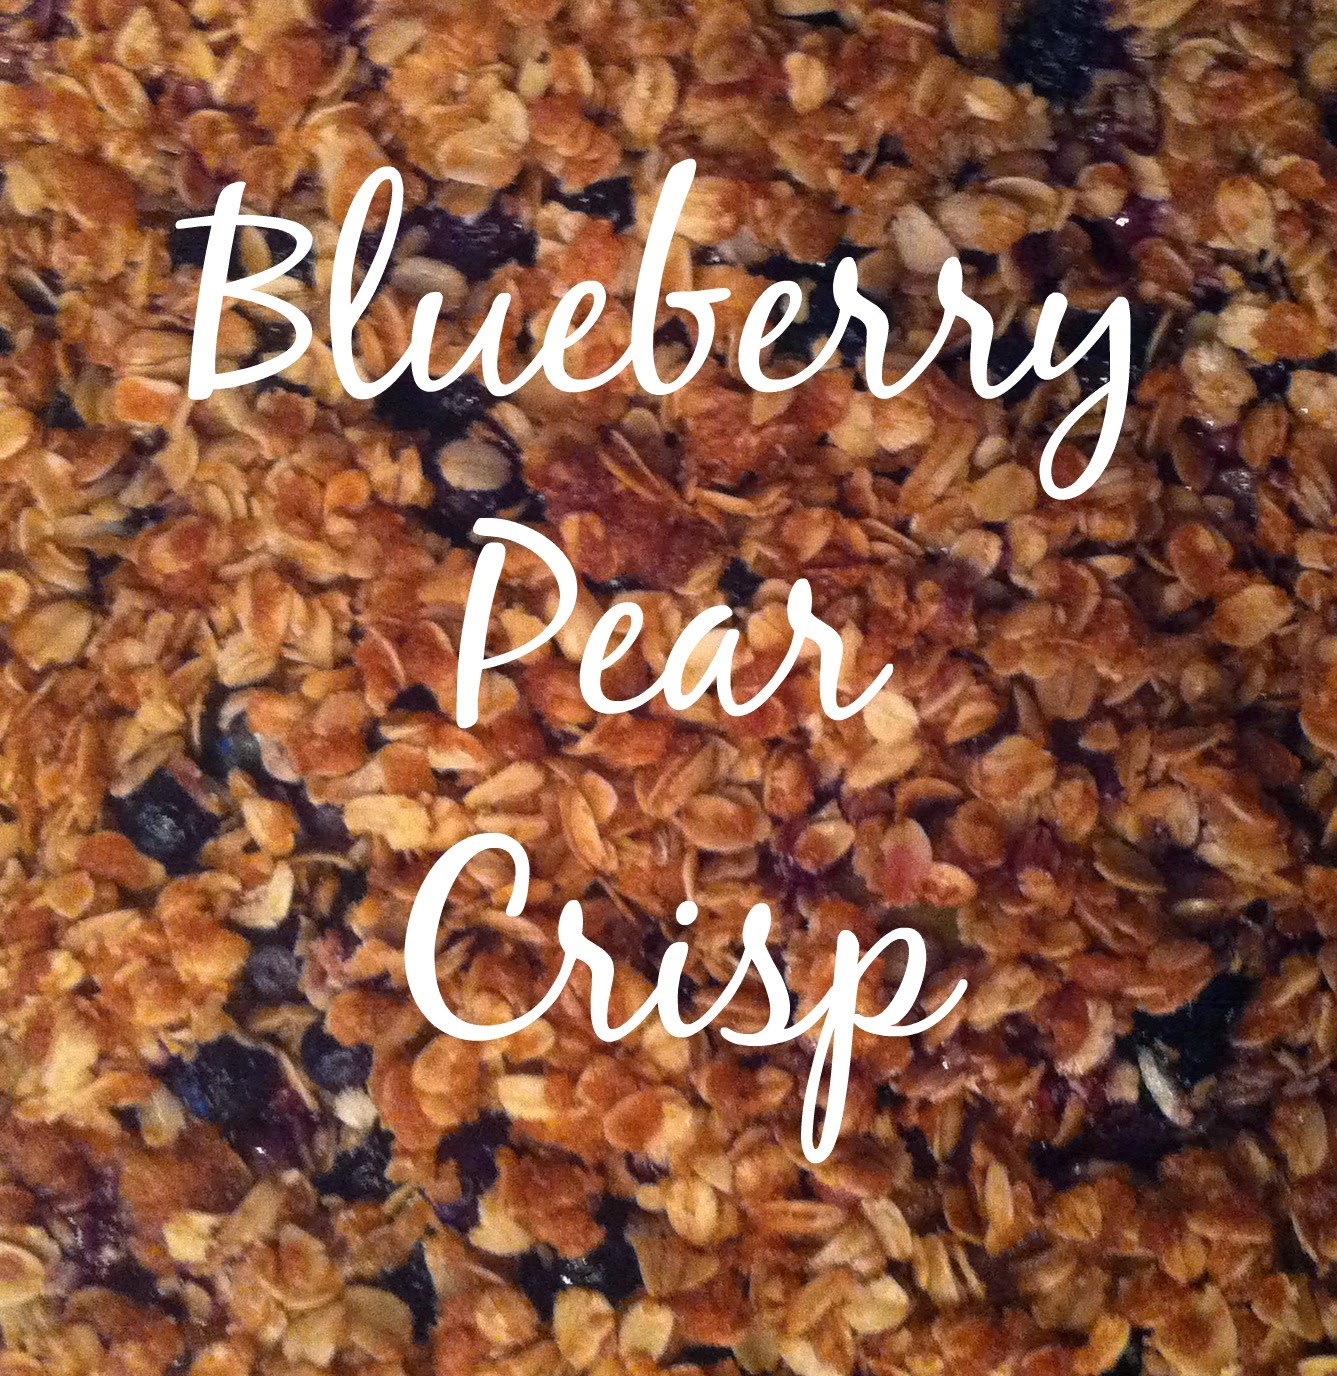 Blueberry Pear Crisp